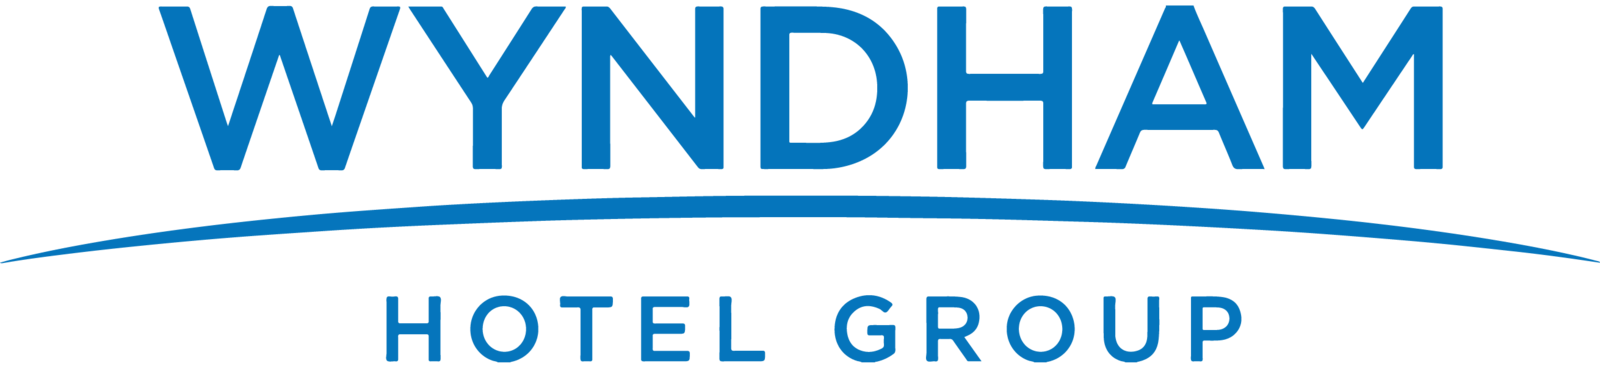 WyndhamHotelGroup_002png_.png